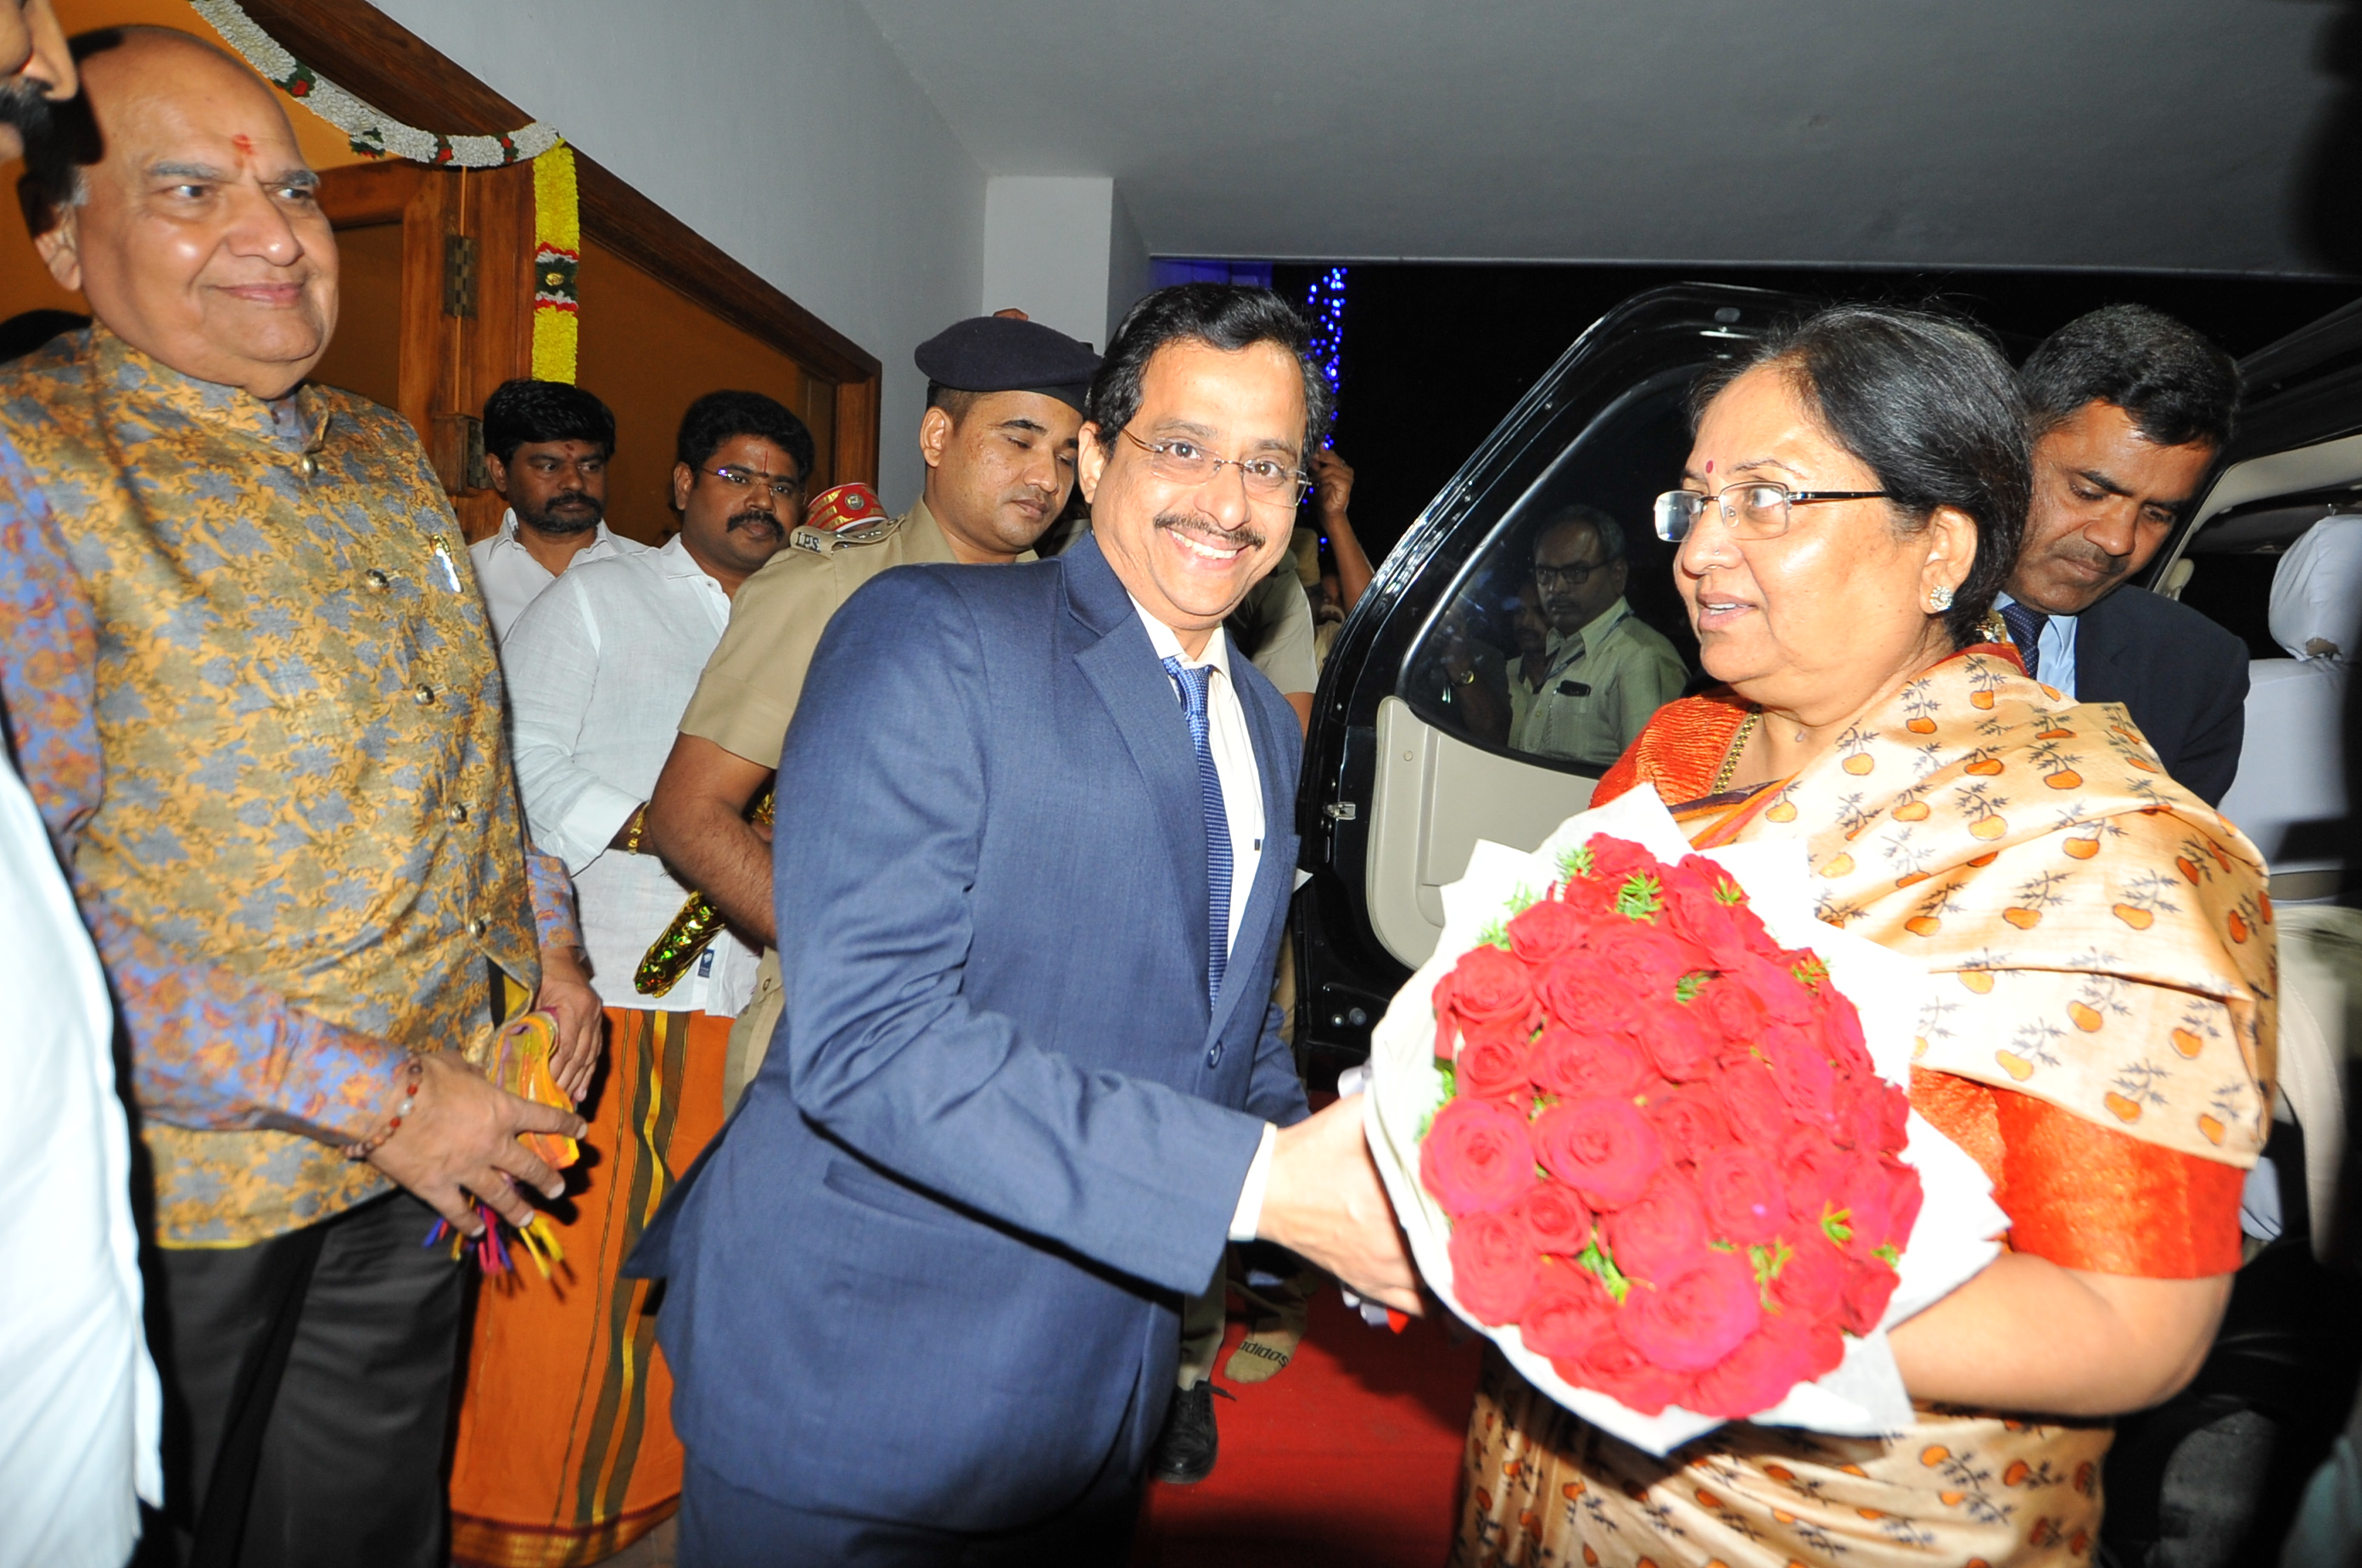 District Collector Welcoming Honourable Governor of Uttarakhand 02/01/2019